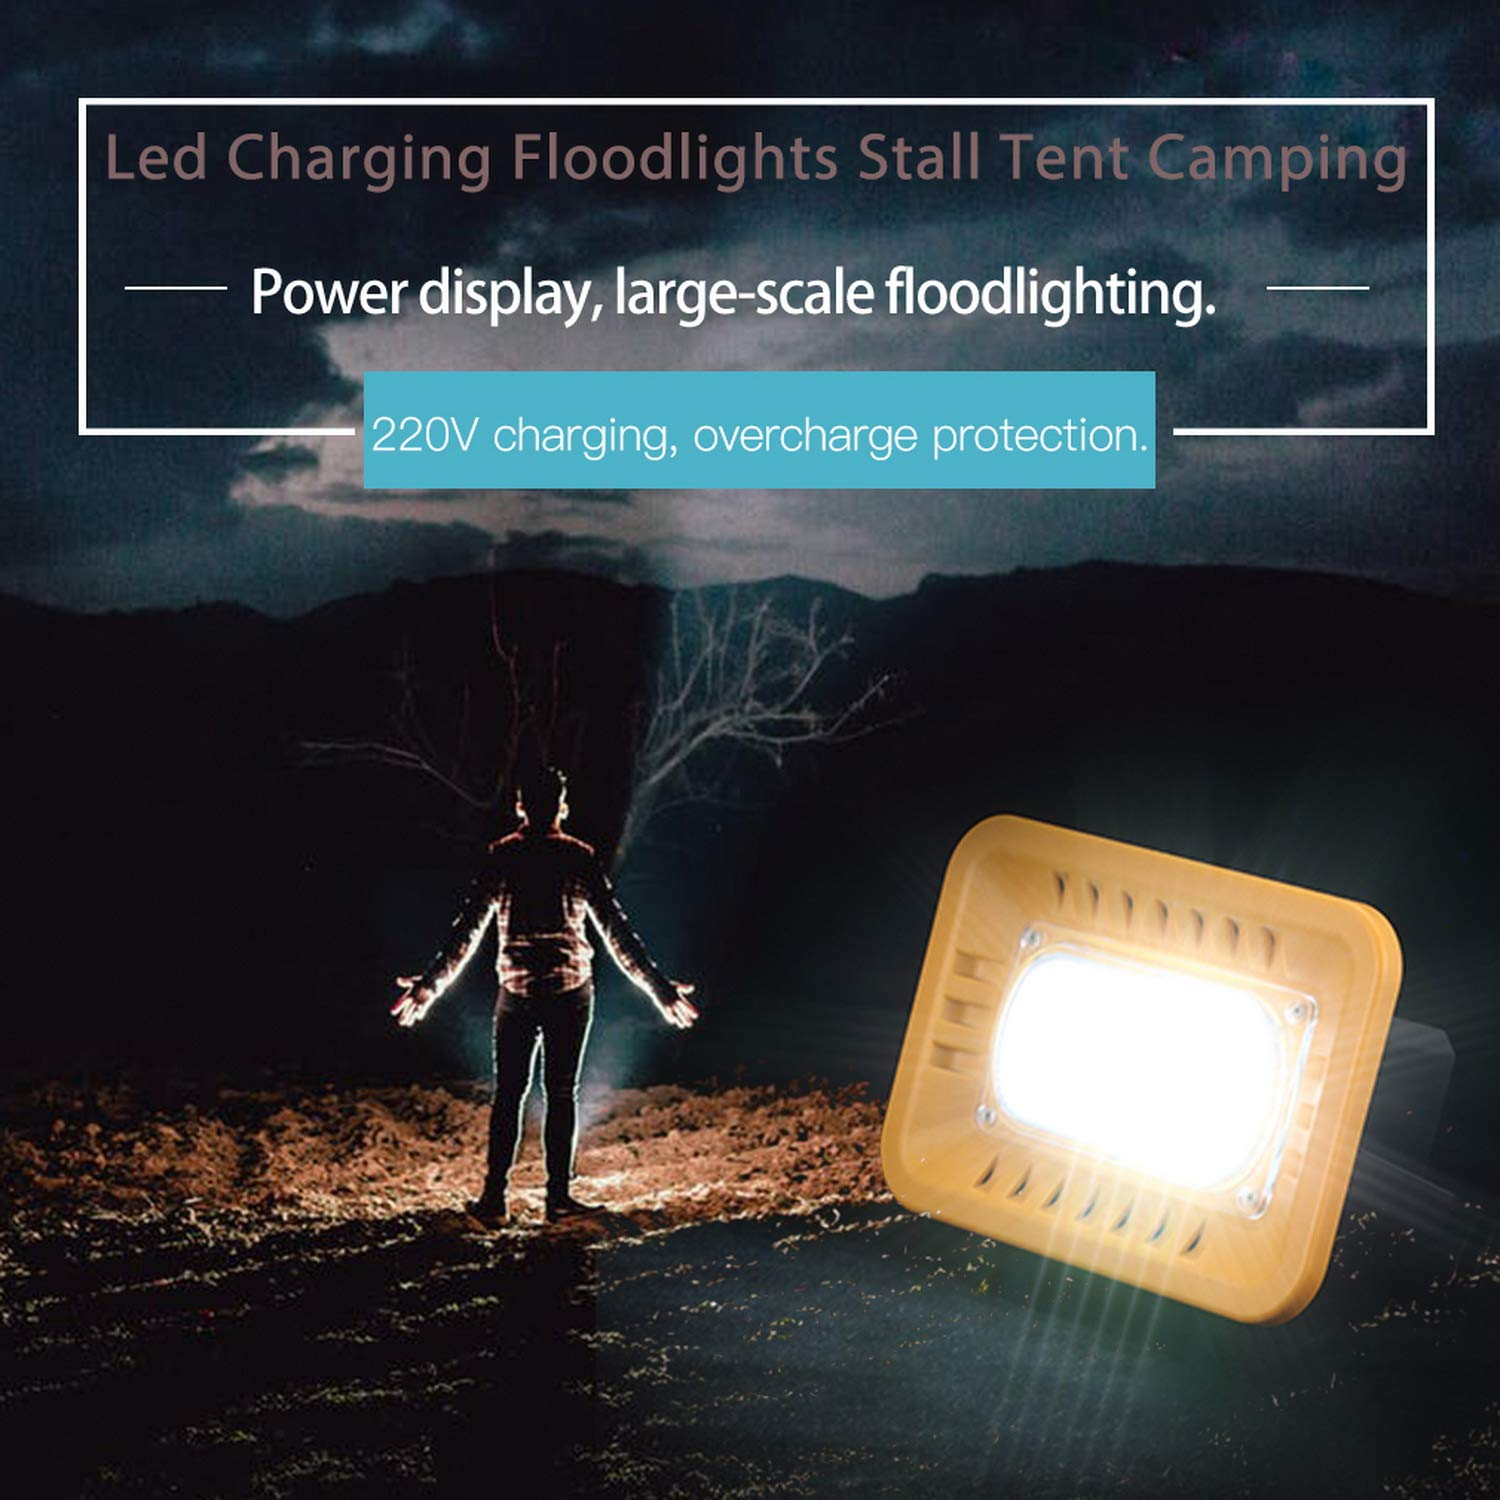 Foreverharbor Led Charging Floodlights Stall Tent Camping Outdoor Portable Home Emergency by Foreverharbor (Image #8)